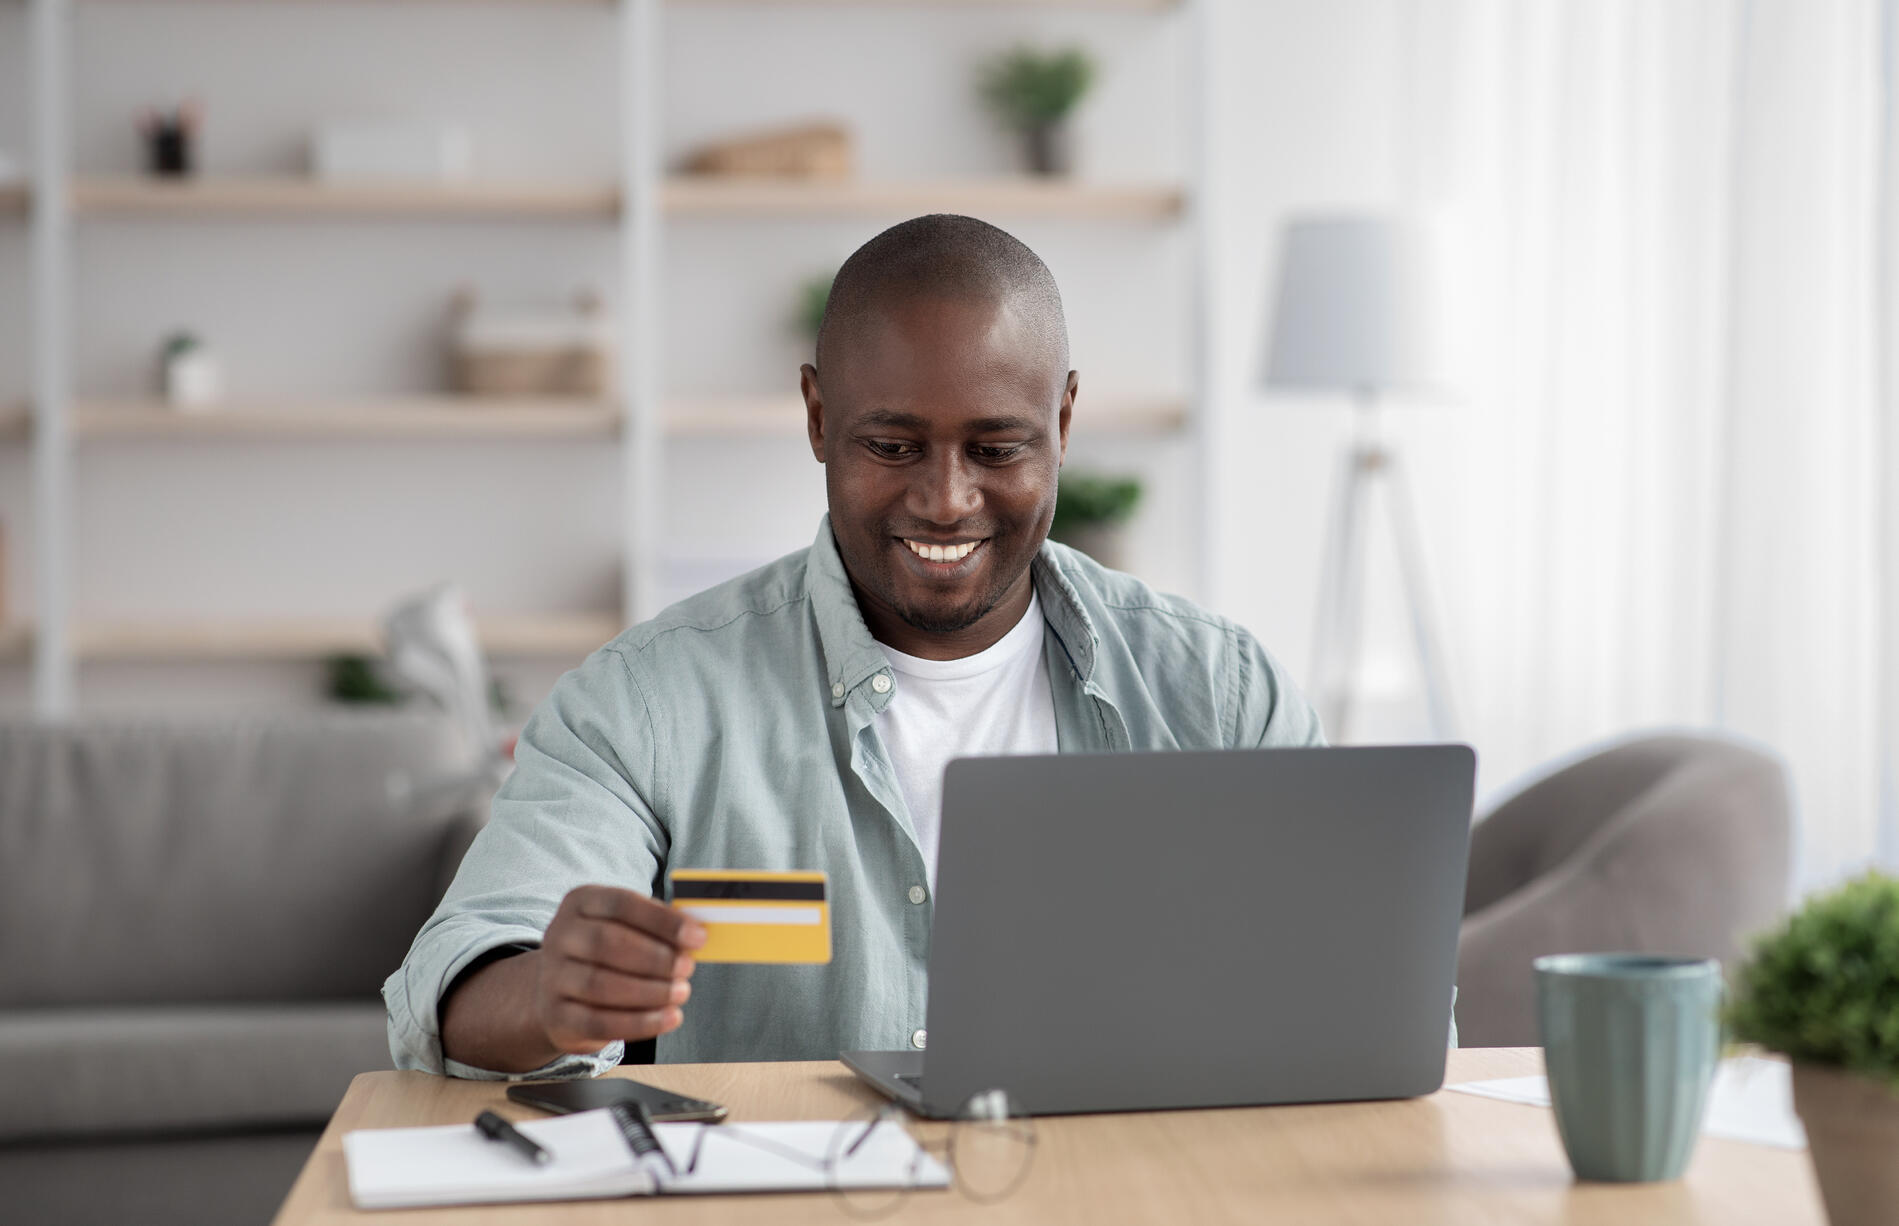 ordering-services-online-buying-and-paying-with-mo-FP9WBGM